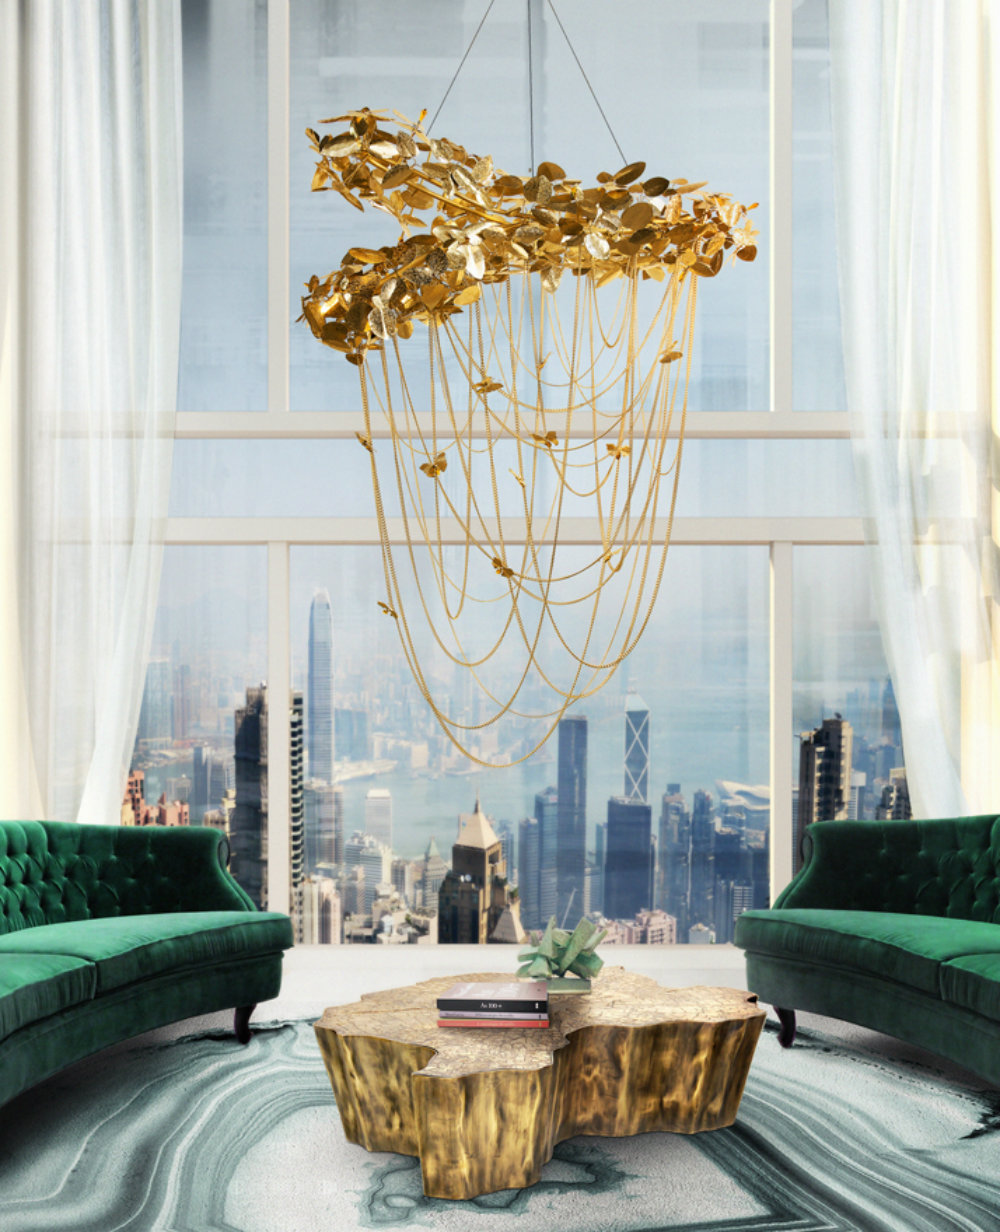 How To Pick The Perfect Chandelier Size  chandelier size How To Pick The Perfect Chandelier Size  How To Pick The Perfect Chandelier Size 1